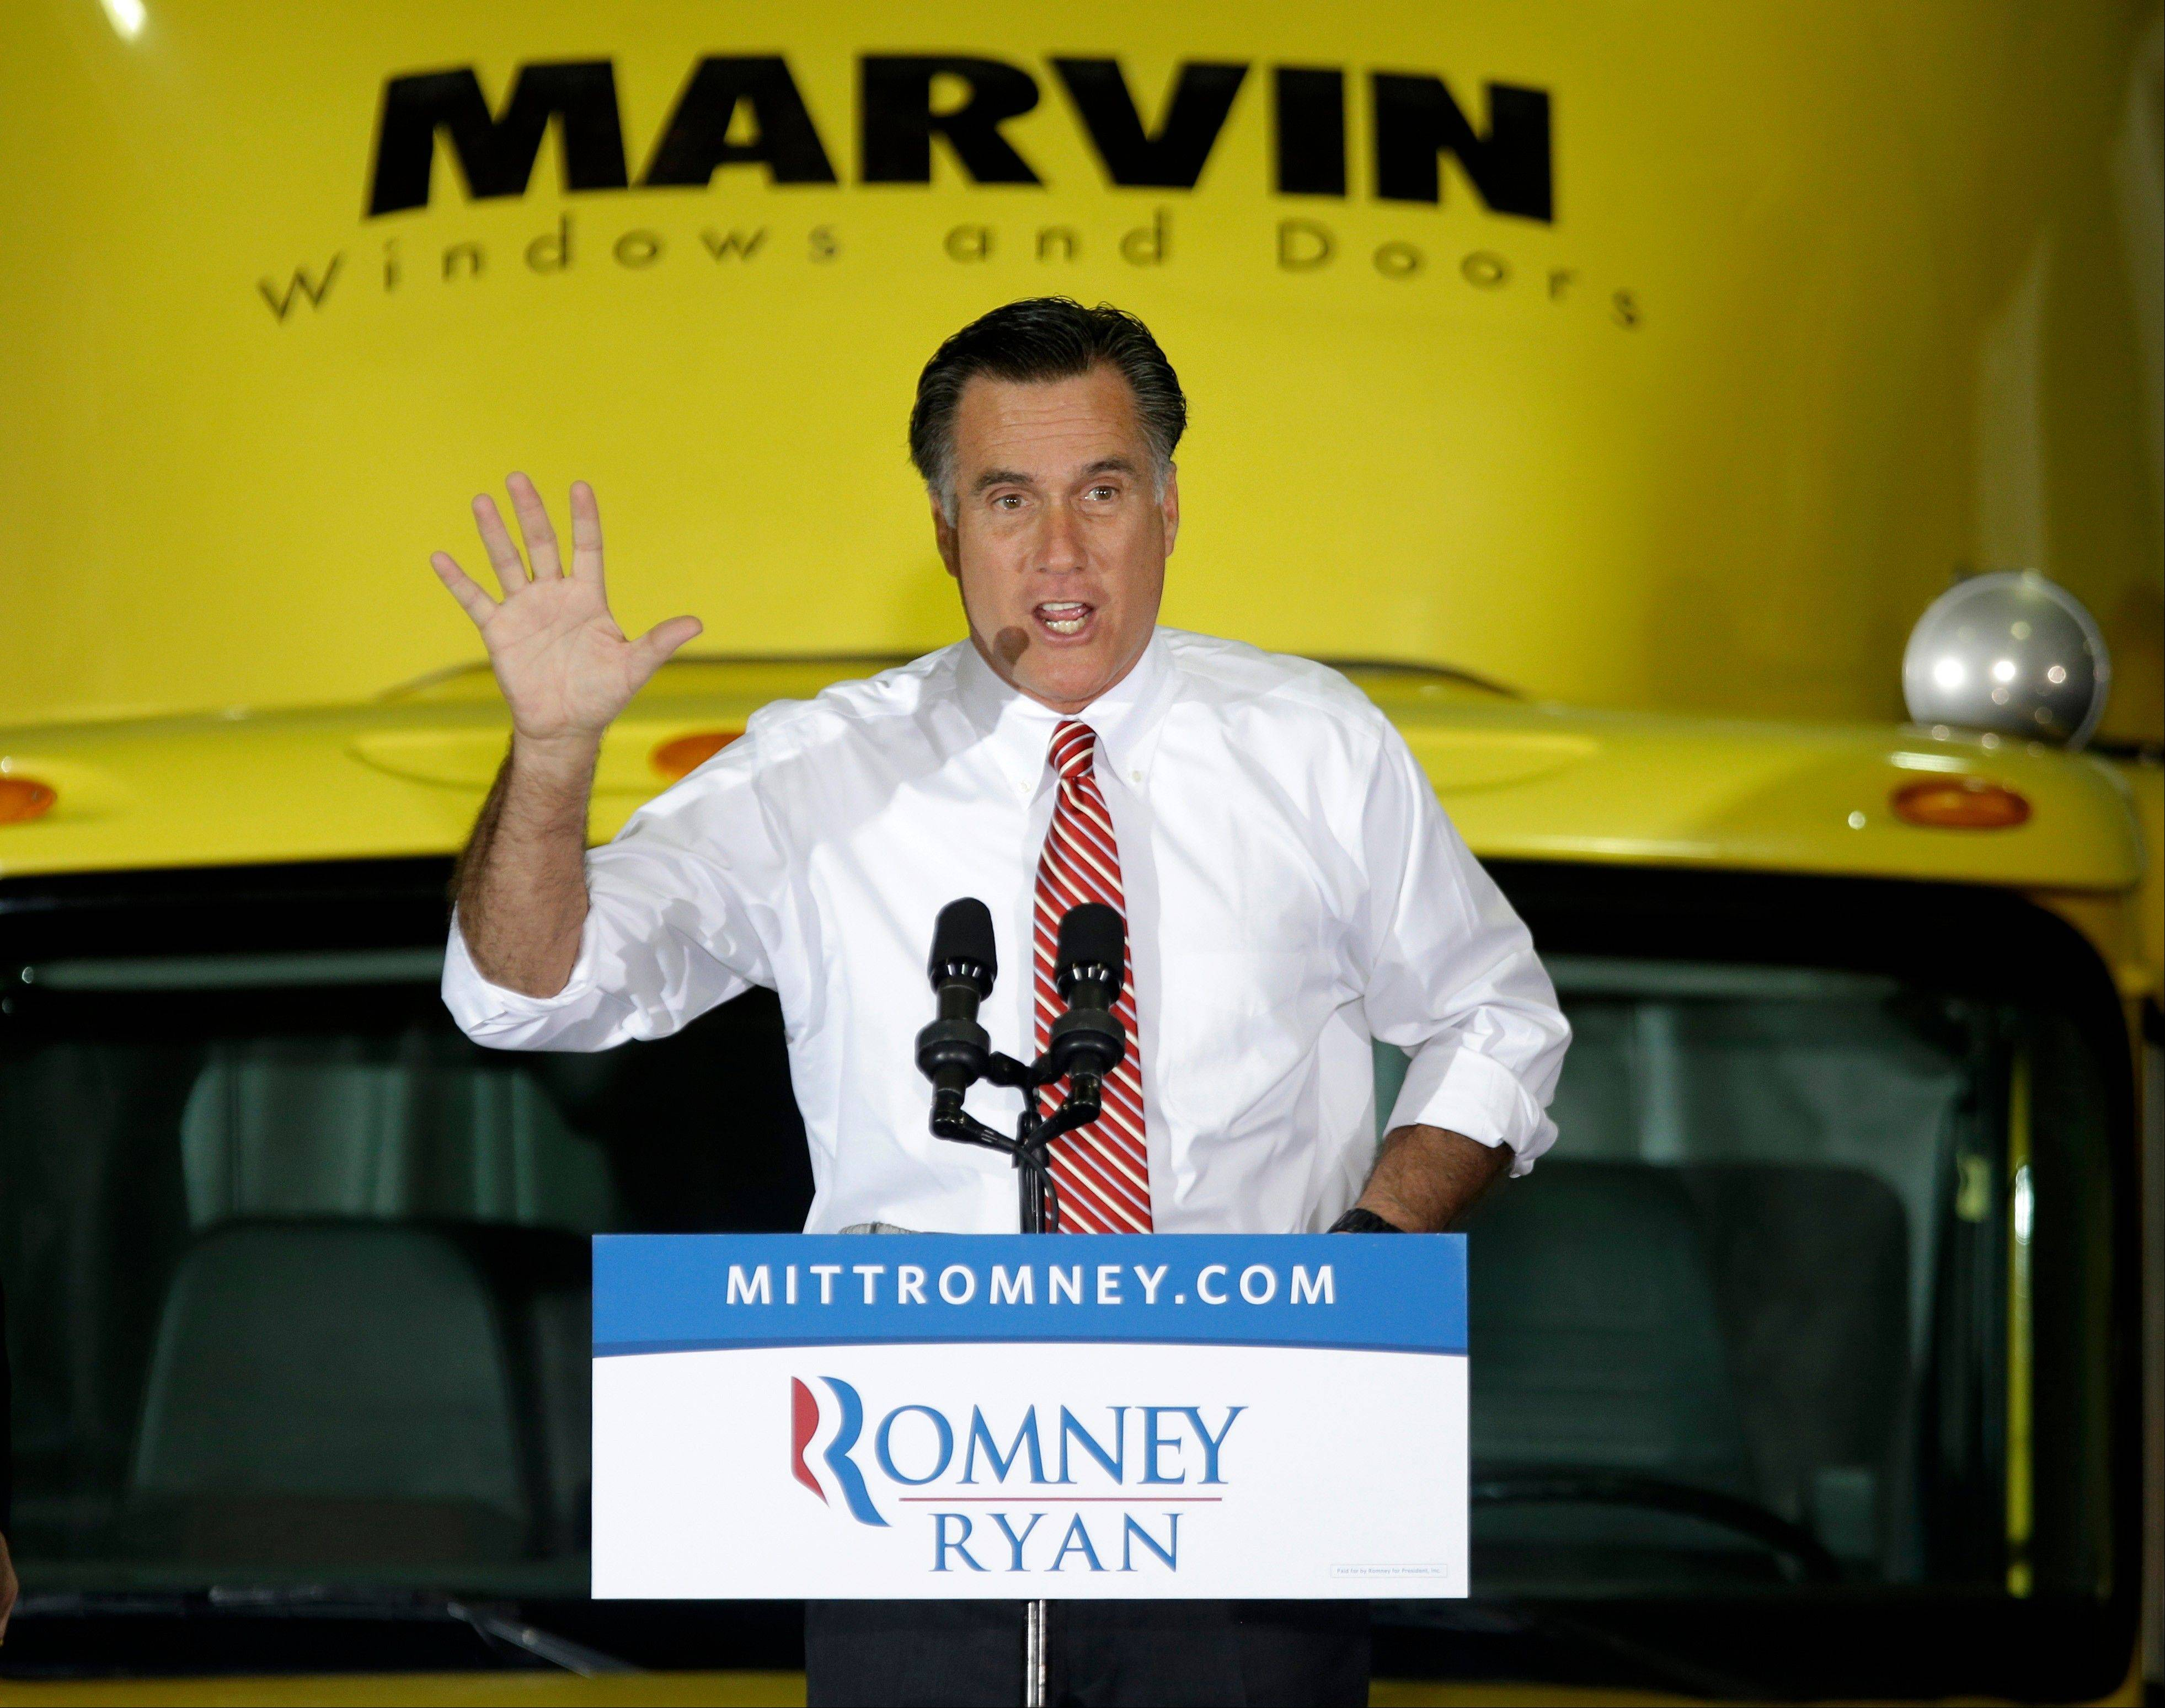 Republican presidential candidate, former Massachusetts Gov. Mitt Romney gestures while speaking at a campaign event at Integrity Windows in Roanoke, Va., Thursday, Nov. 1, 2012.